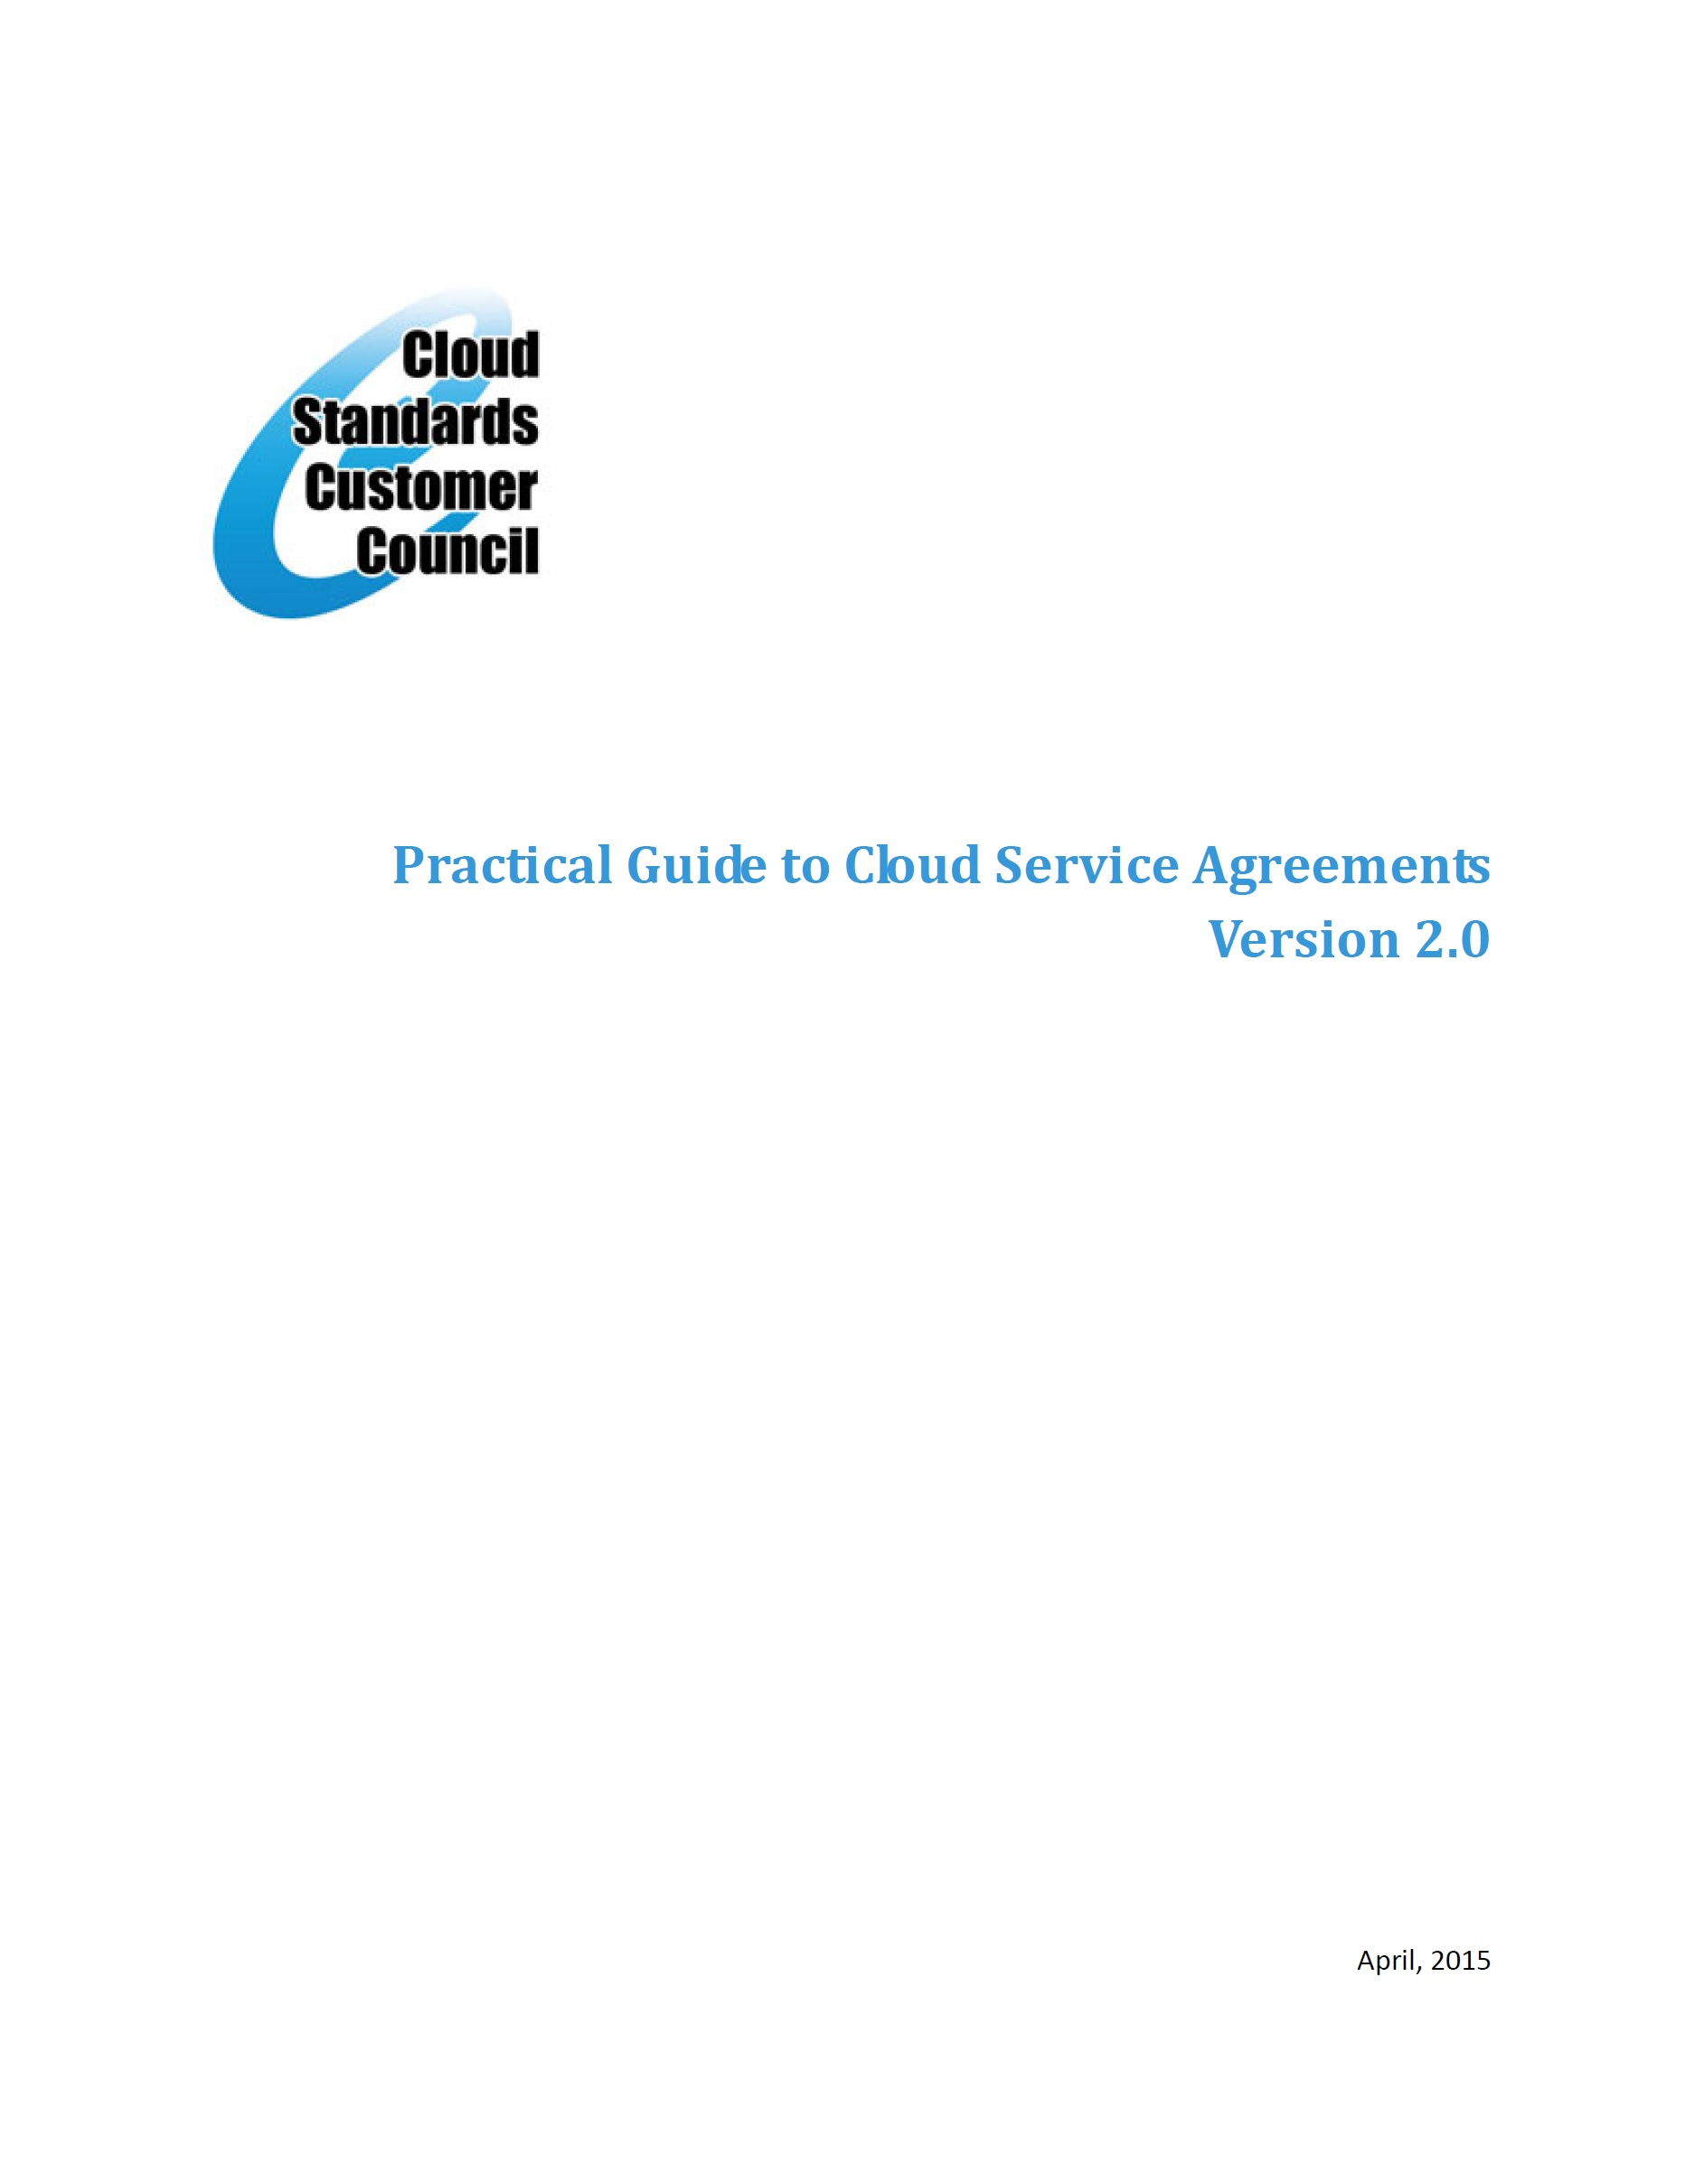 Practical Guide to Cloud Service Agreements – CSCC, 2015